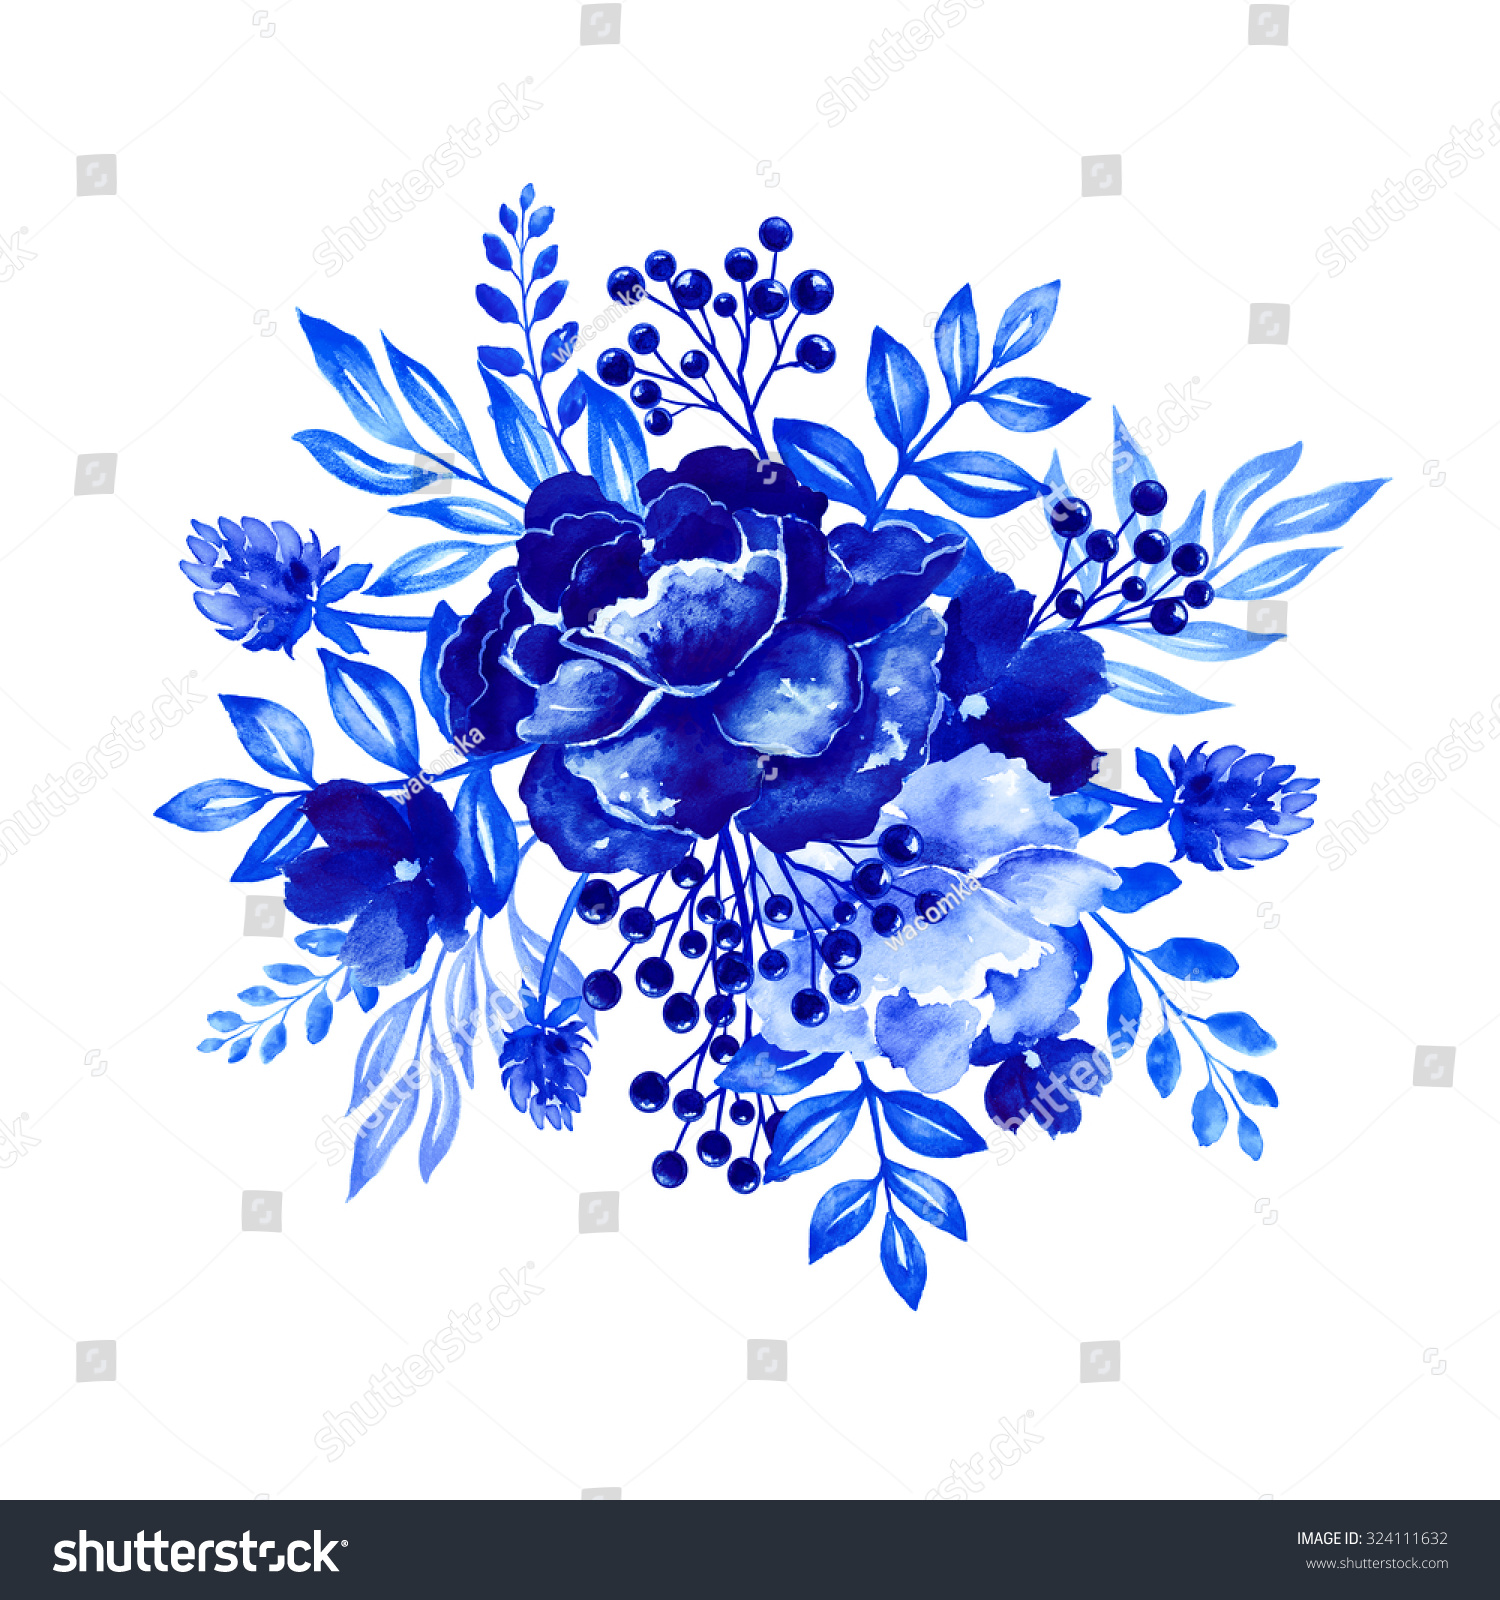 Artistic floral element abstract gzhel folk art blue flowers stock - Flowers Watercolor Illustration Bouquet Blue Floral Design Element Isolated On White Background